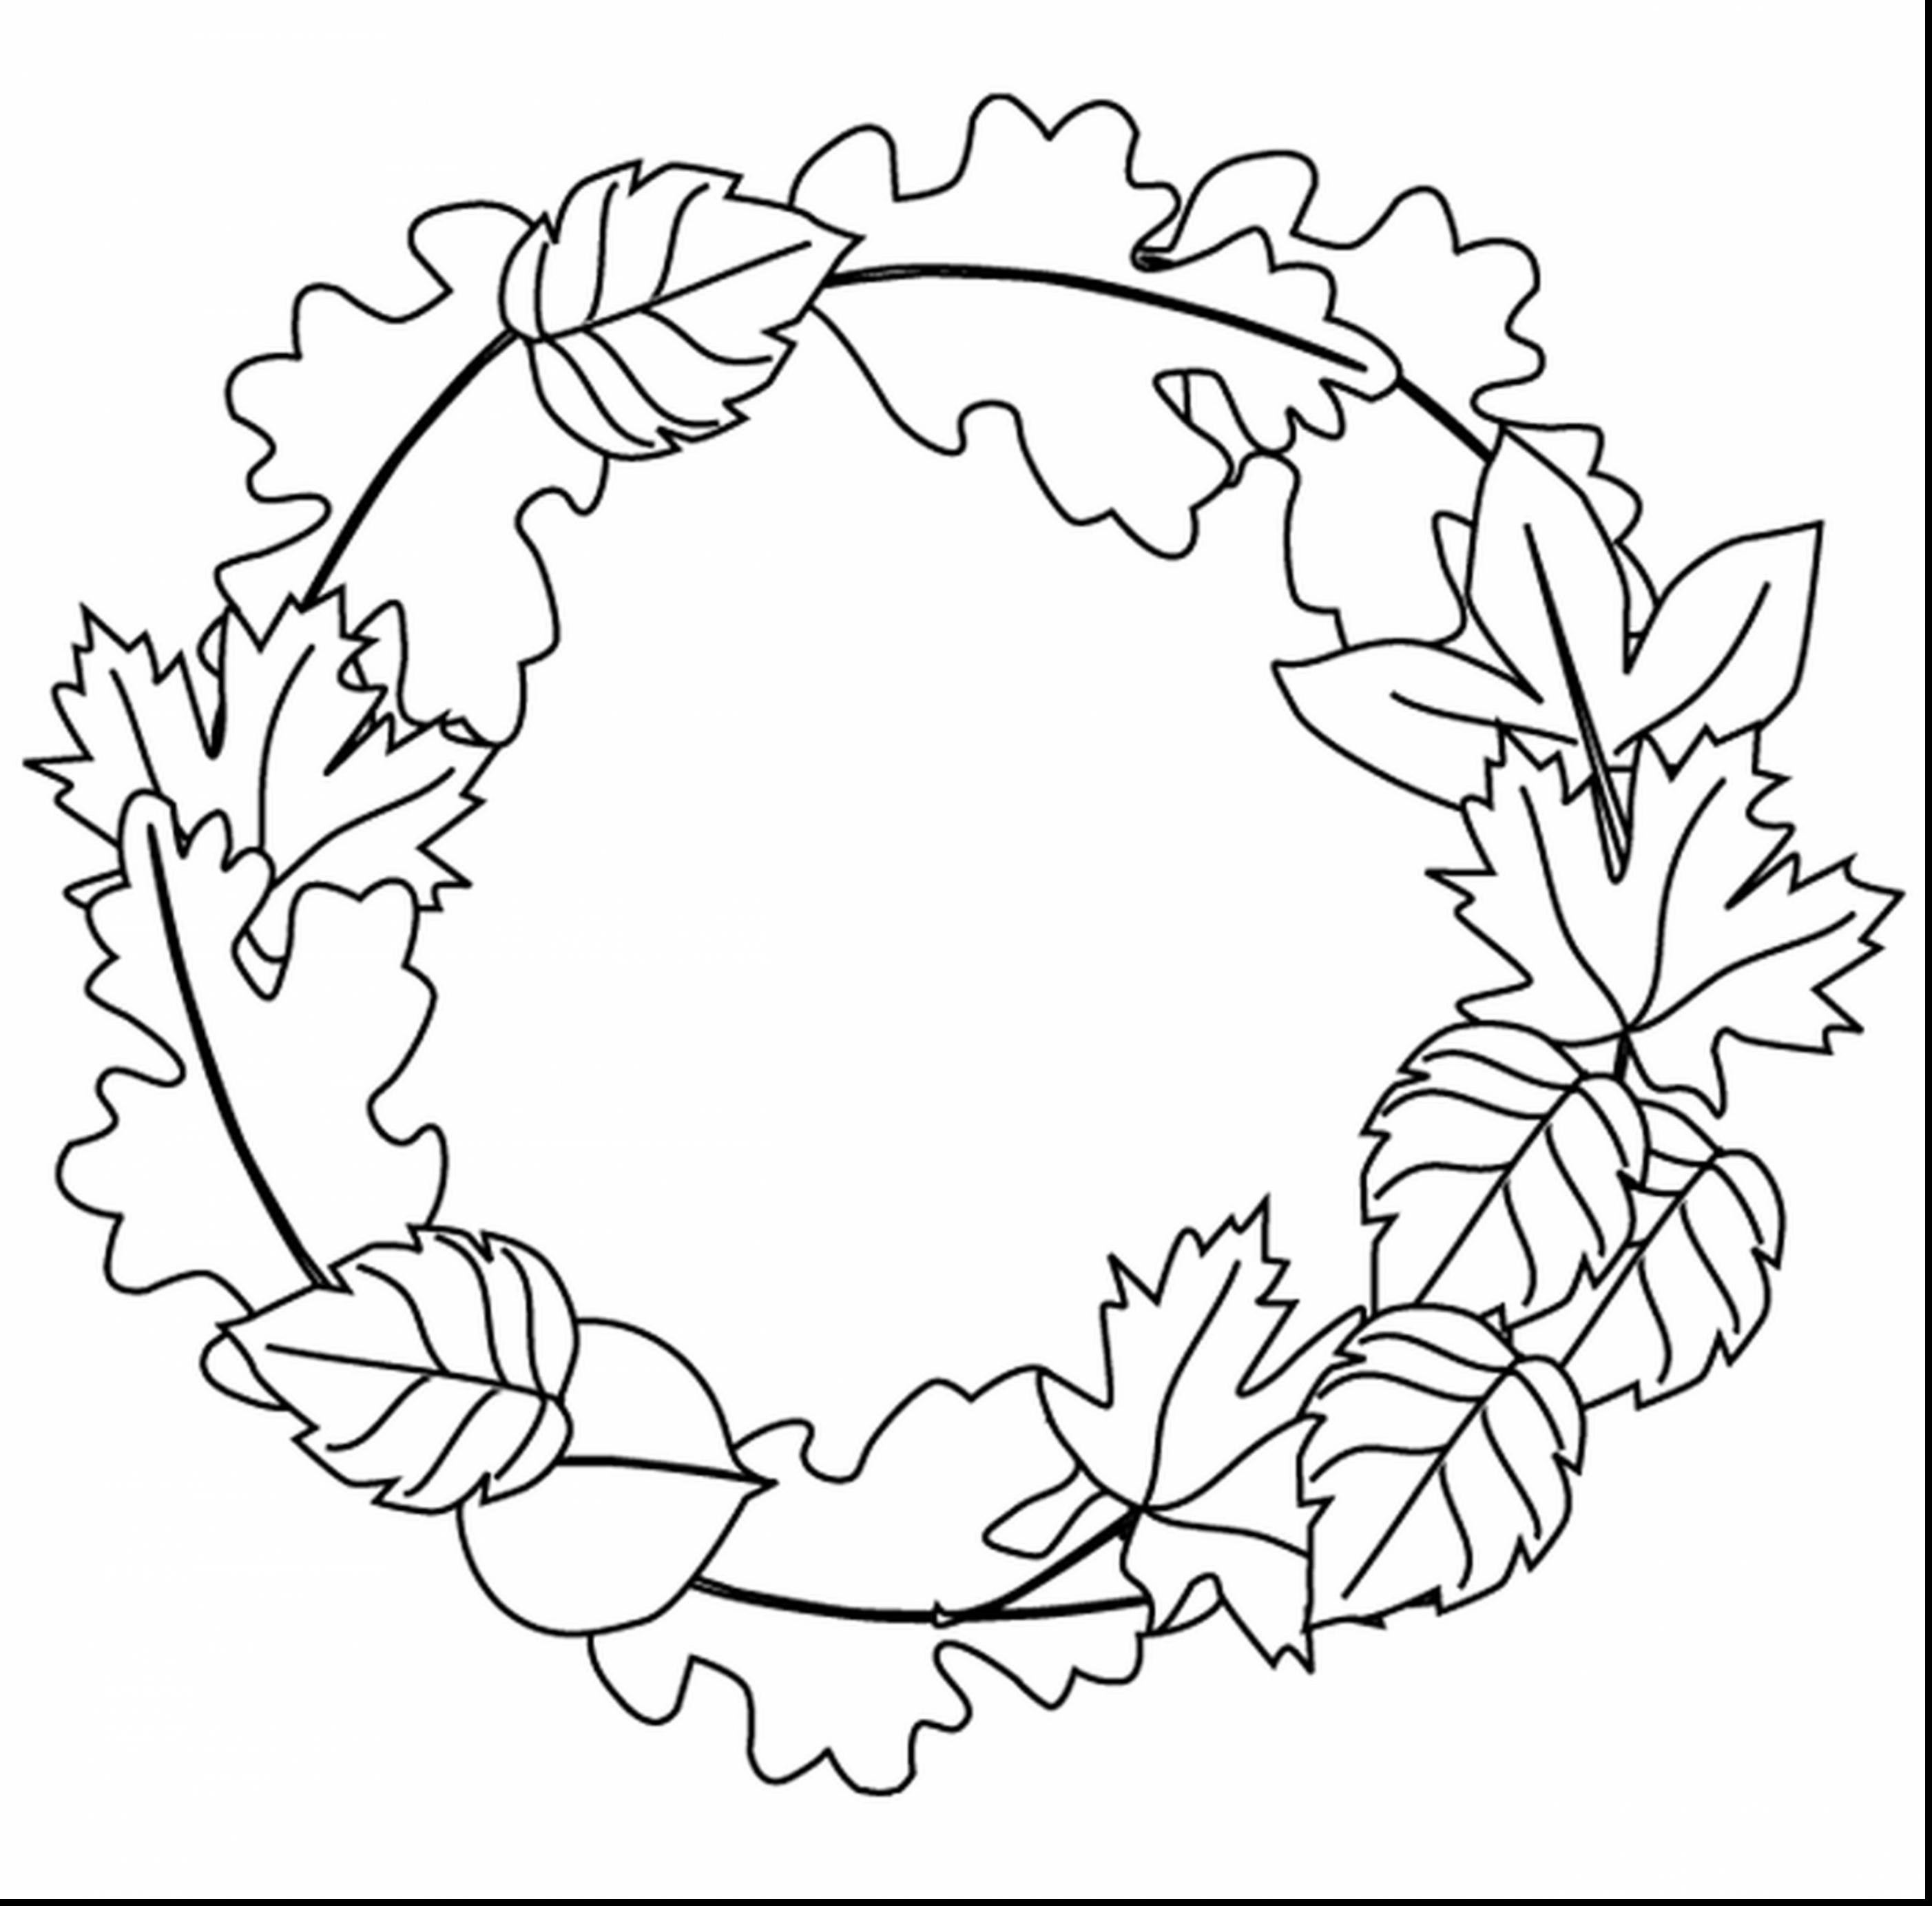 Fall Harvest Coloring Pages 8 #7429 - Free Printable Fall Harvest Coloring Pages